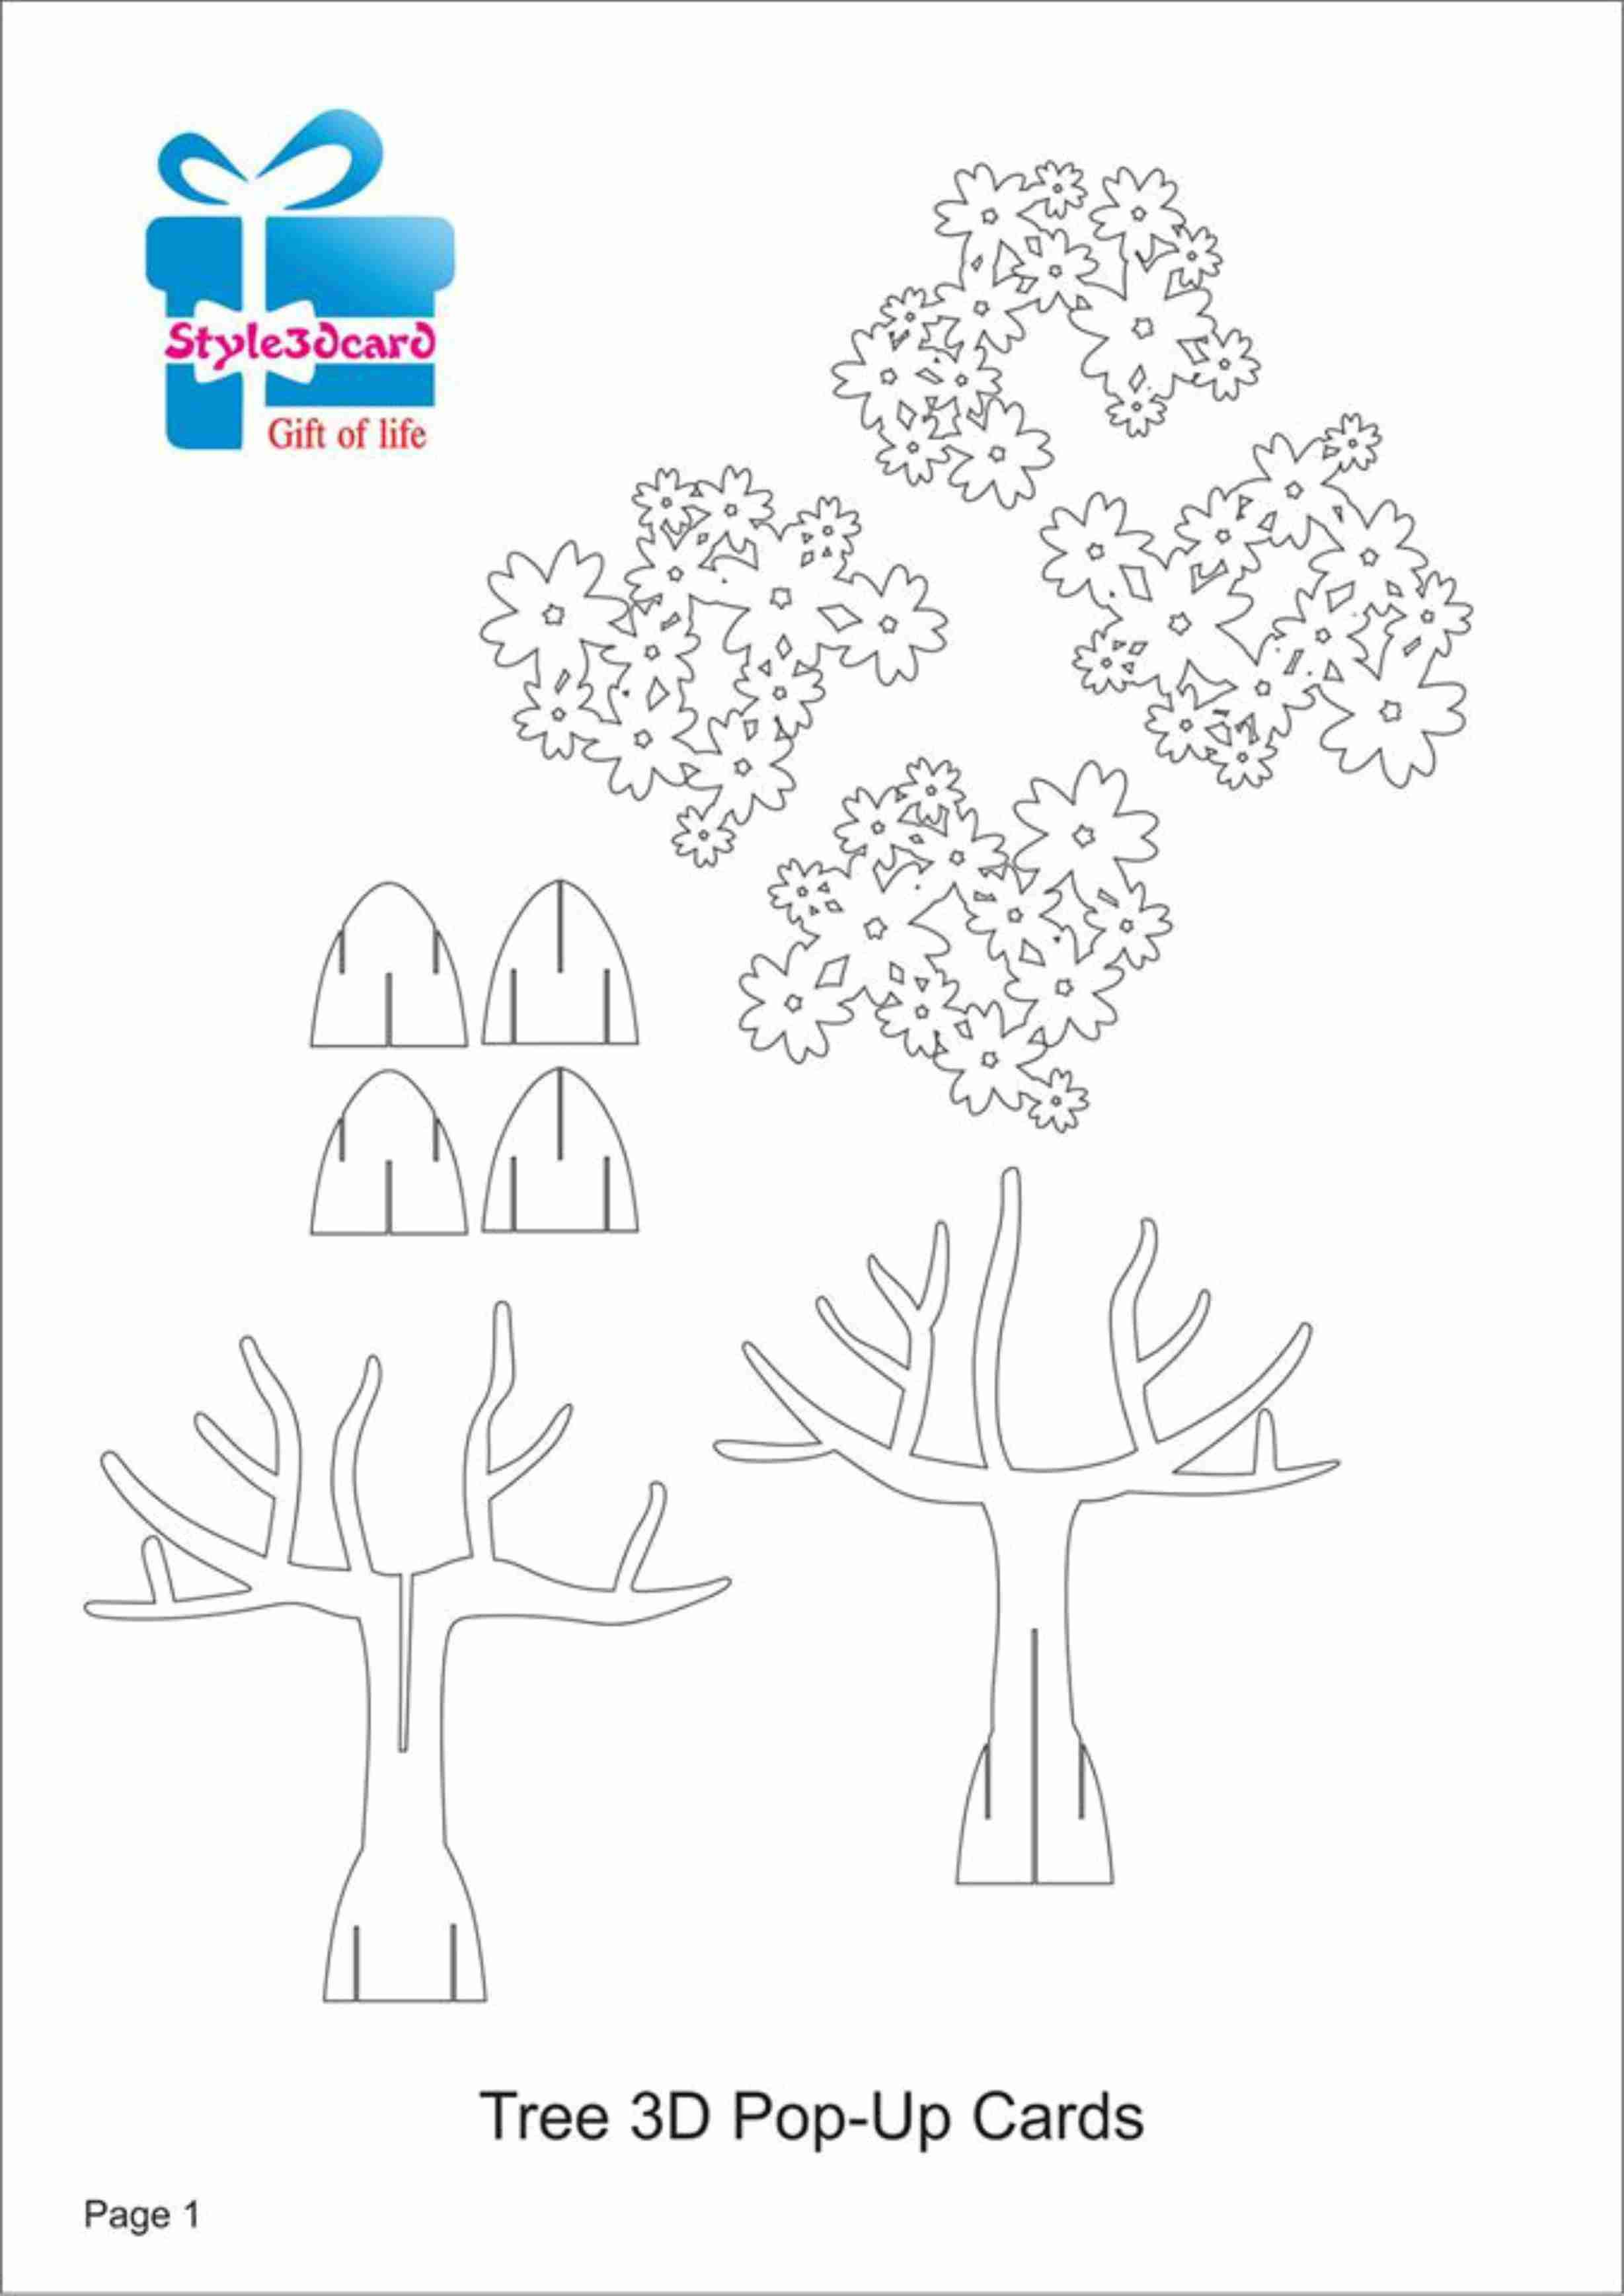 012 Template Ideas Popup Booksl1 Pop Up Cards Breathtaking Templates for Printable Christmas Tree Templates 3D